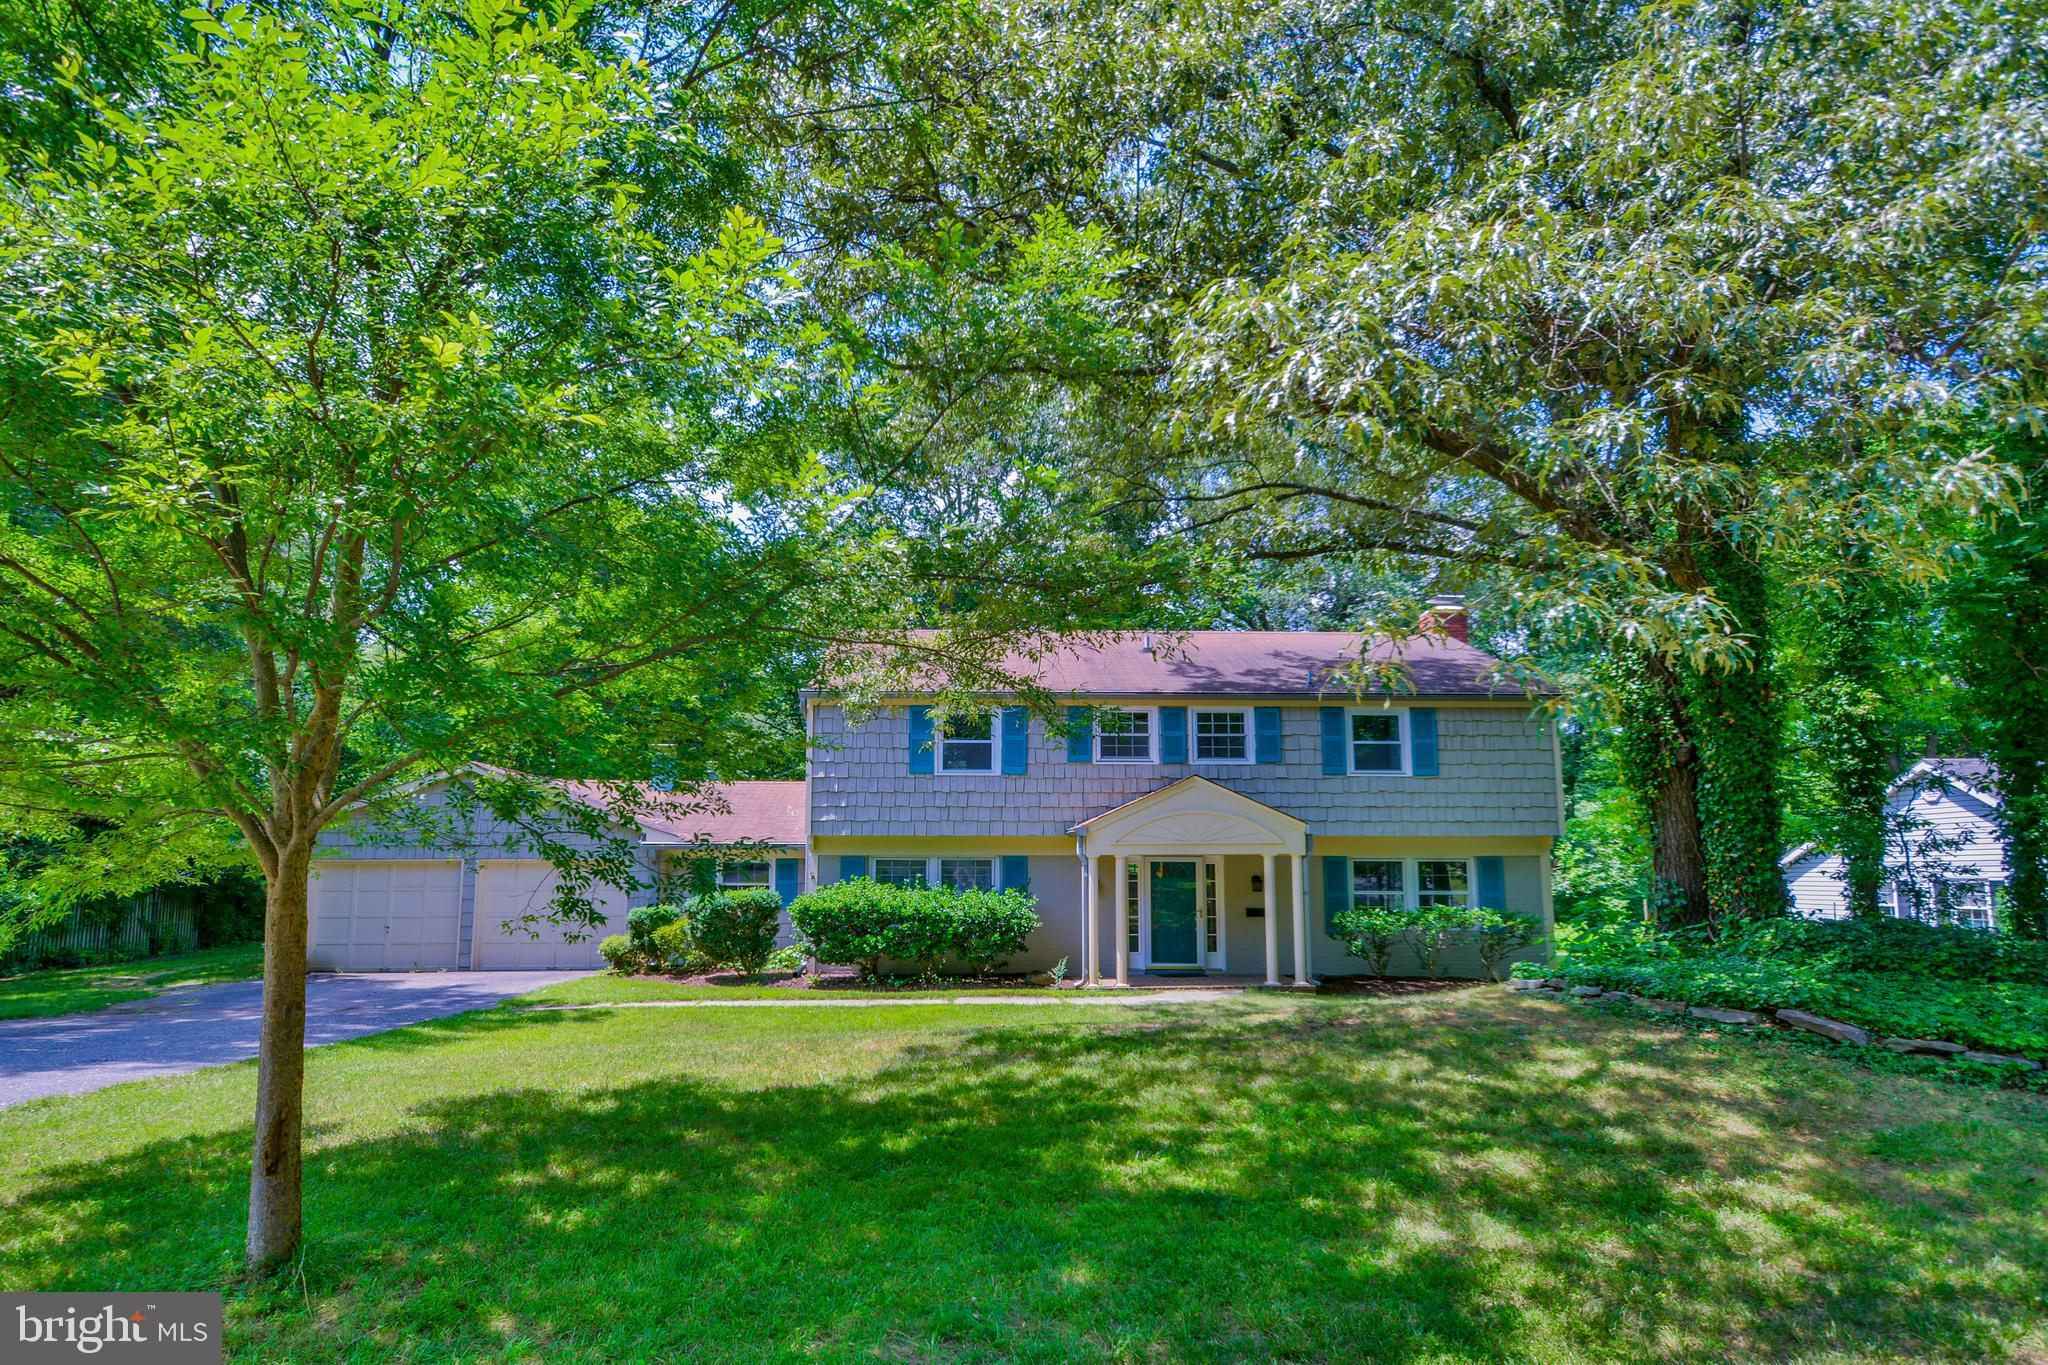 12406 SILVERBIRCH LANE, LAUREL, MD 20708